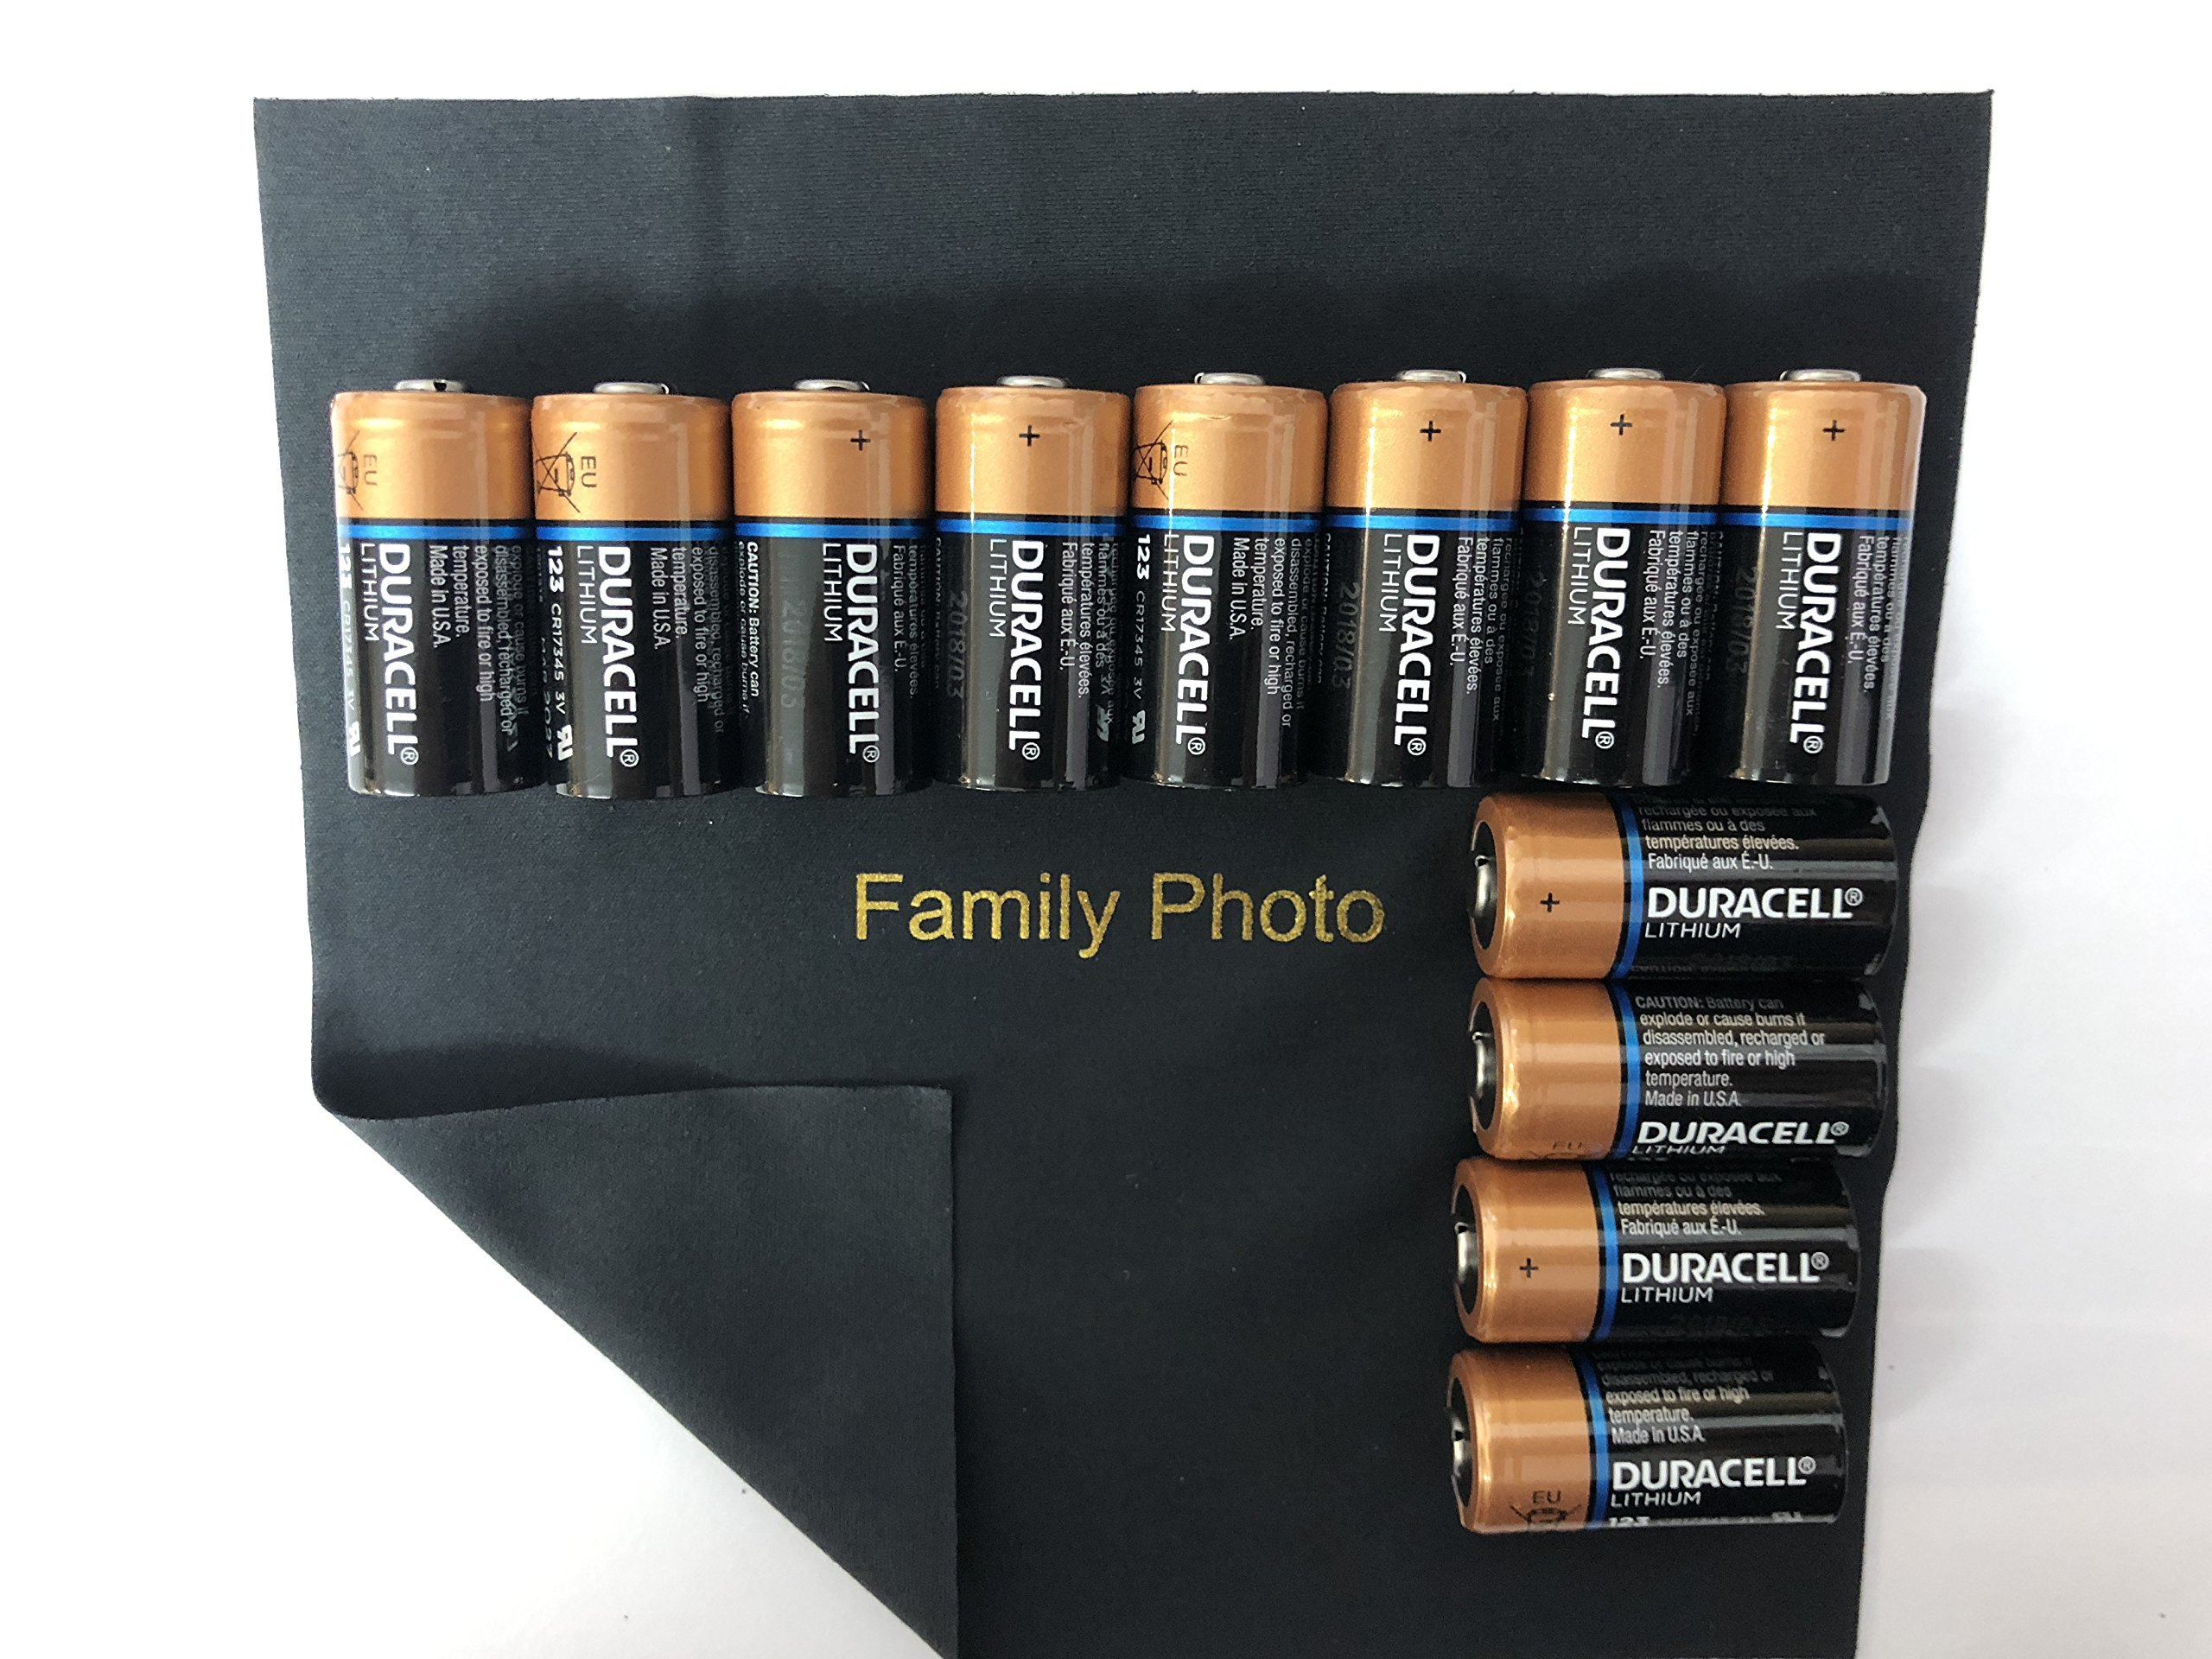 Duracell Ultra Lithium 3V CR123 Leak Resistant Long Lasting Batteries with Family Photo Micro Fiber Cloth (12)